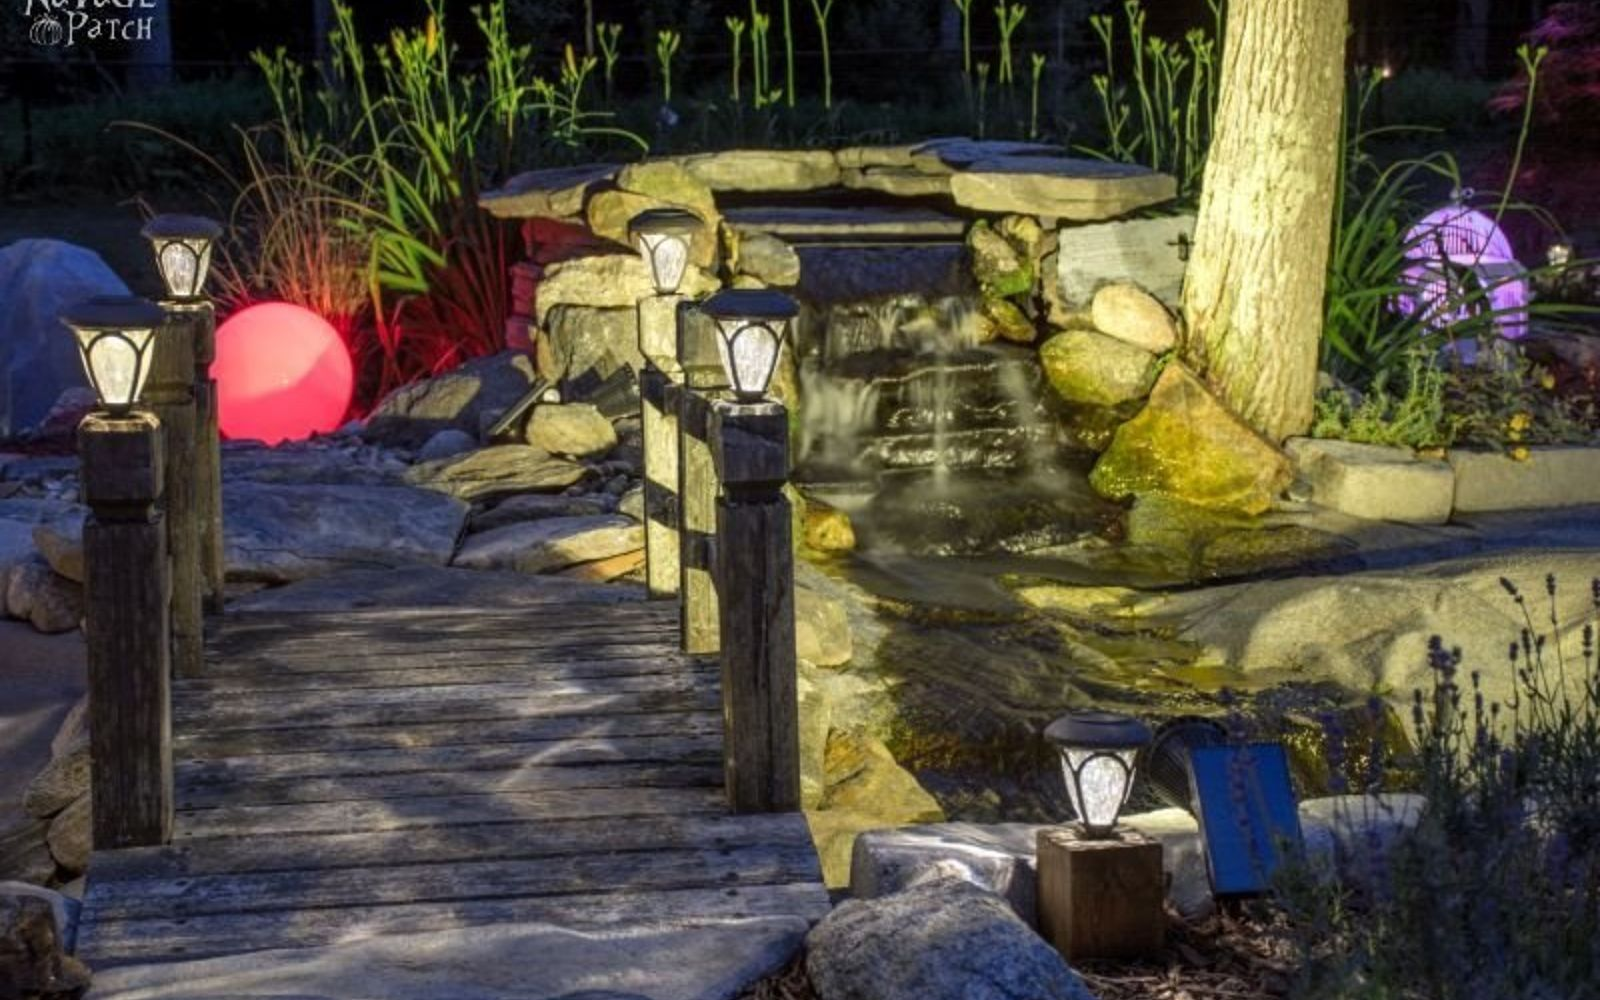 s wait they did what in their backyard , outdoor furniture, outdoor living, Set up your own bubbling pond waterfall